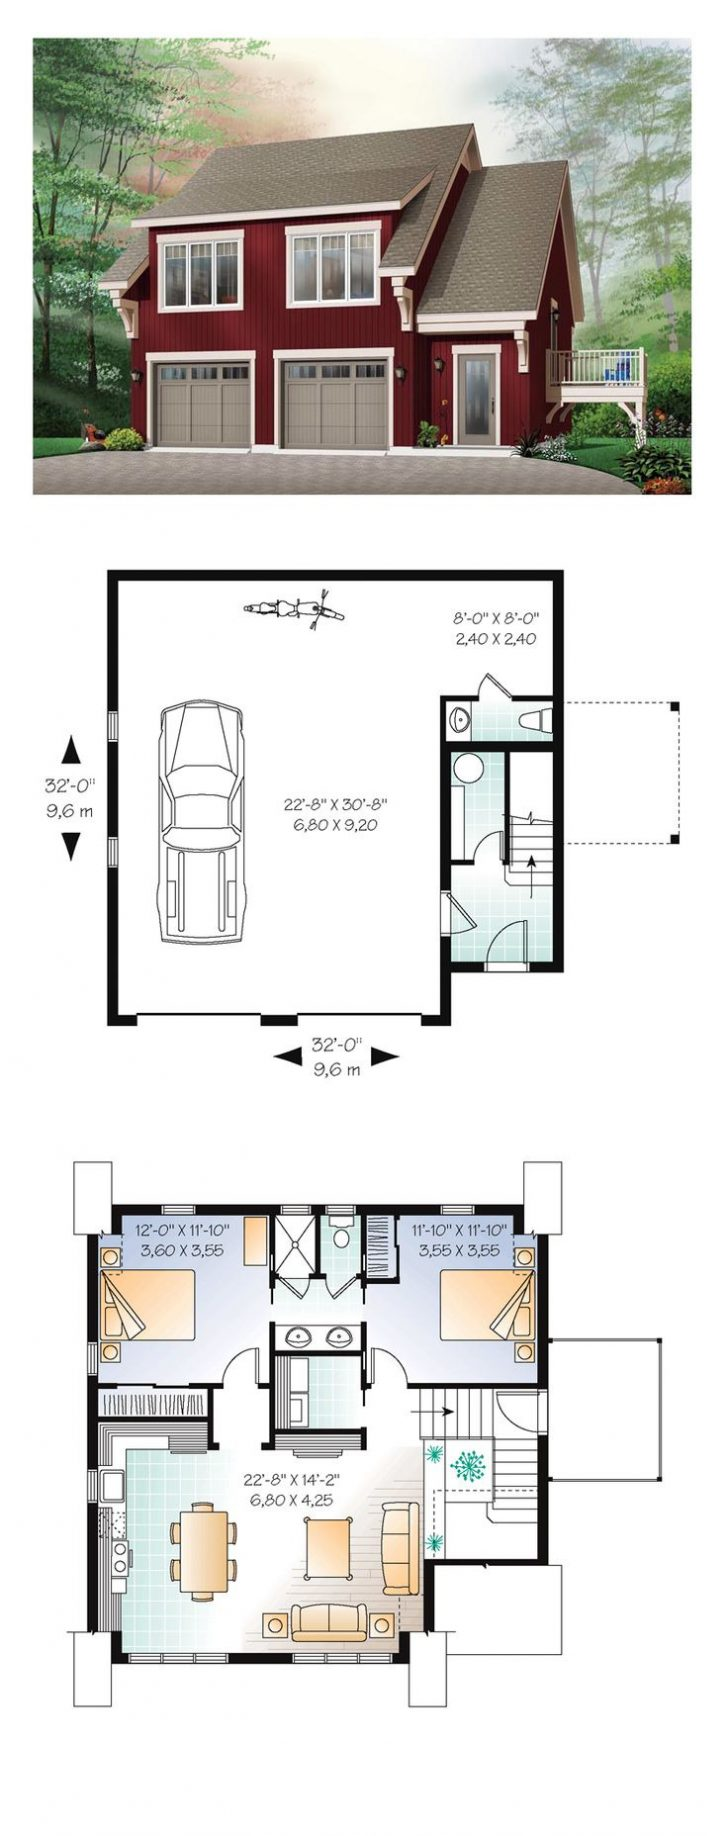 Garage with Guest House Plans 2020